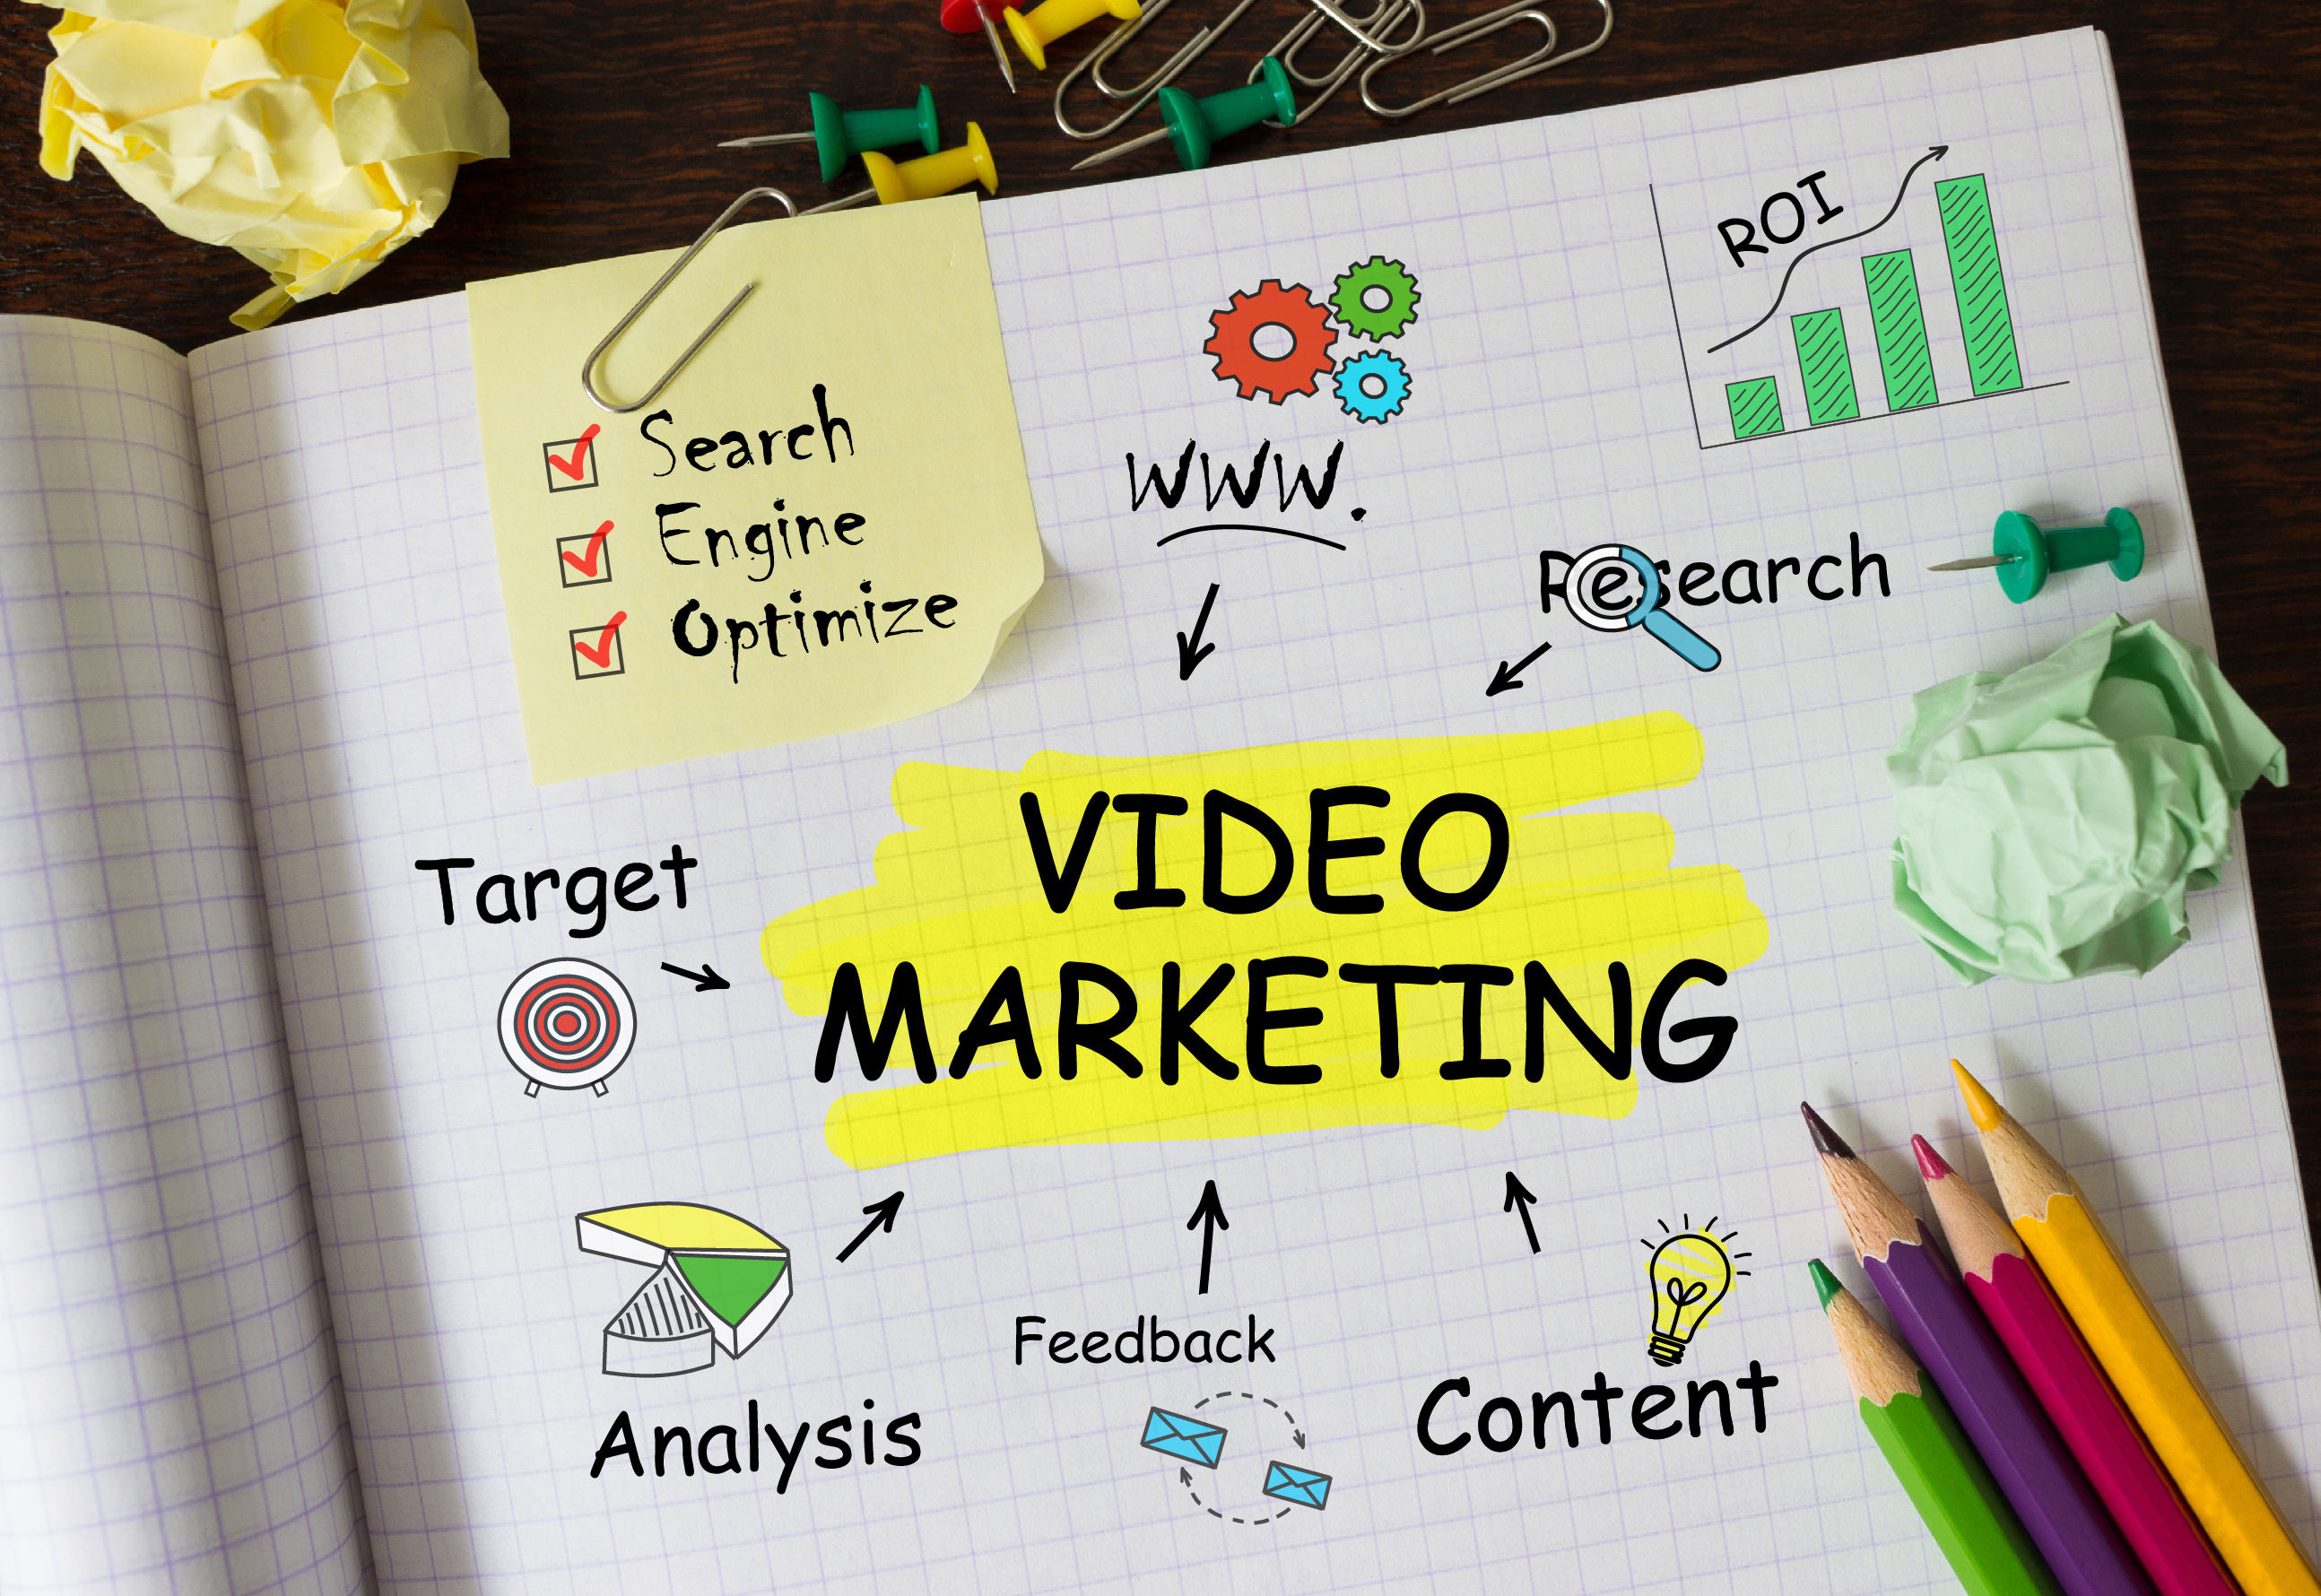 Image 7 Ways to Generate Enquiries Using Video